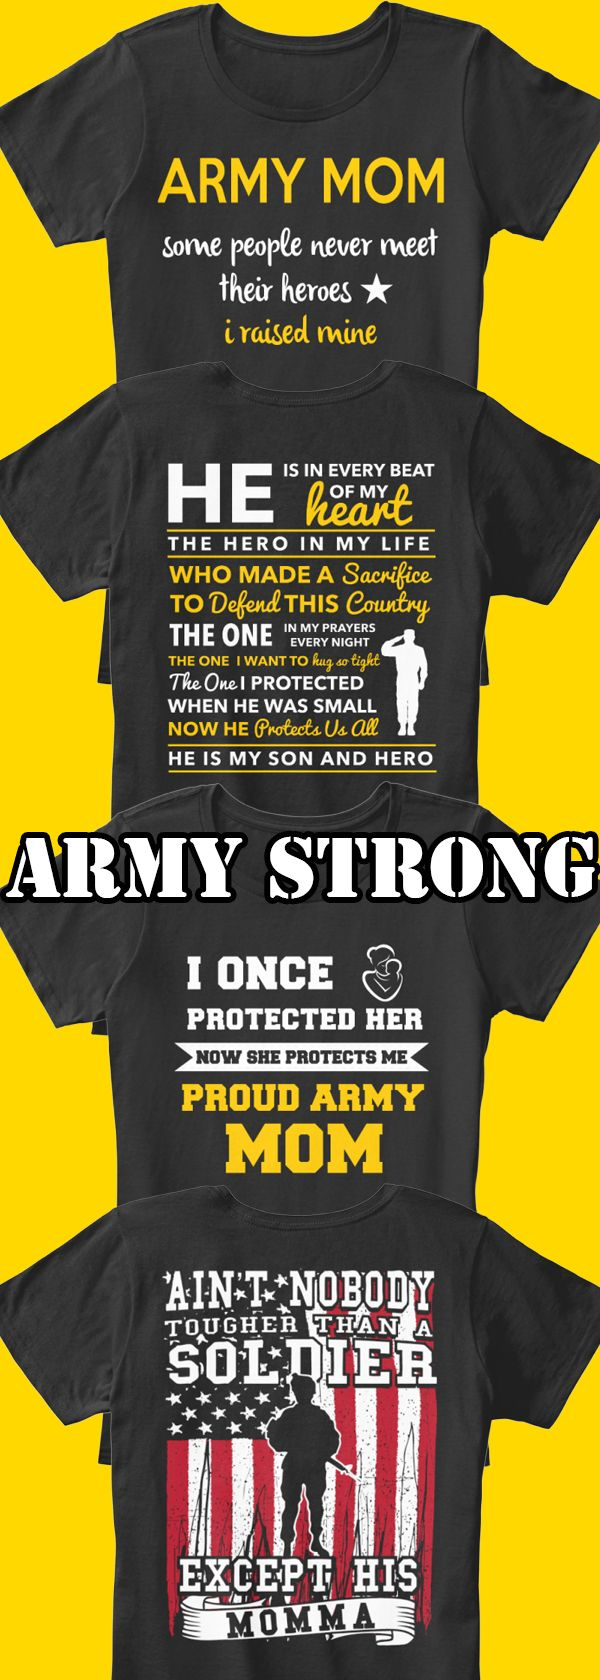 Design your own t shirt military - Are You A Proud Army Mom Or Know Someone Who Is Show Your Support With These Special Designed Shirts